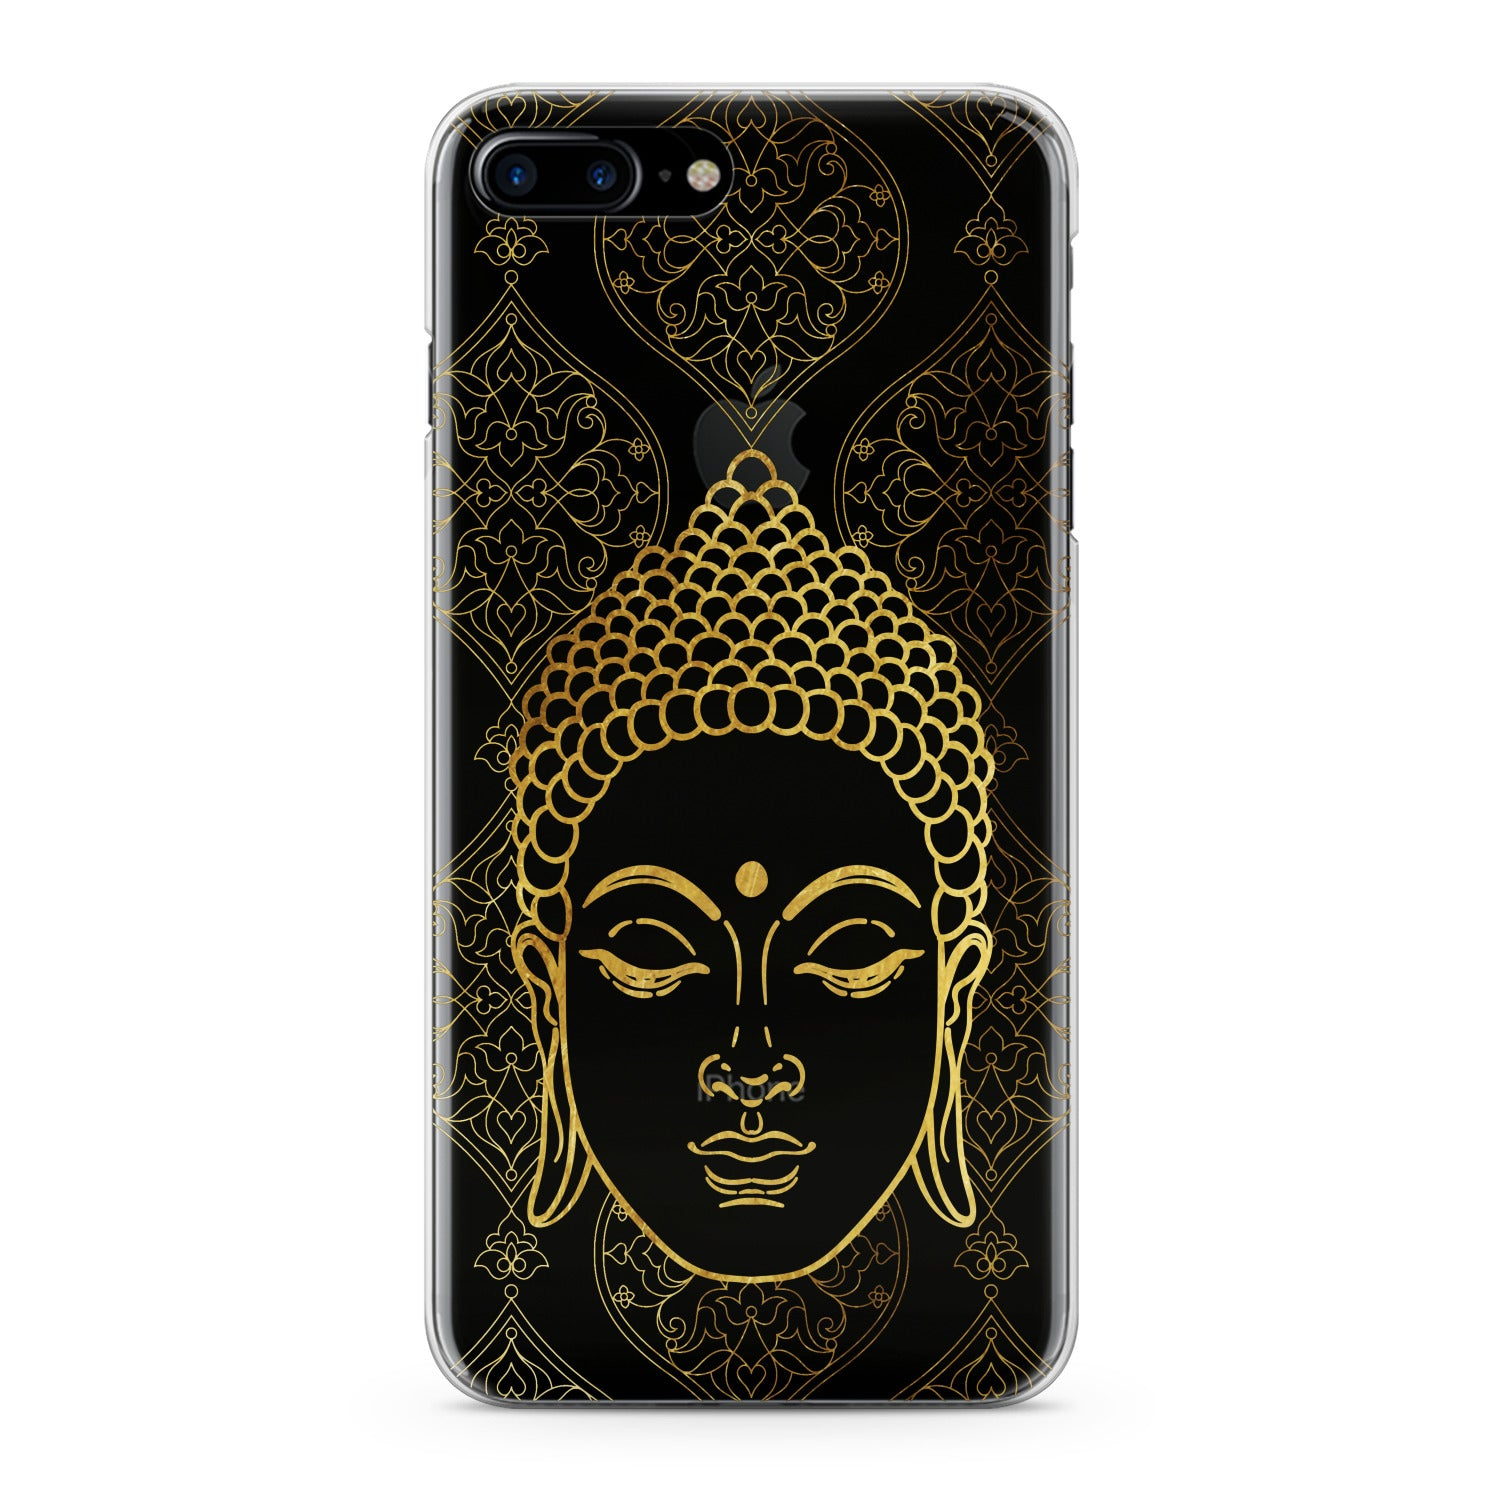 Lex Altern Golden Buddha Phone Case for your iPhone & Android phone.